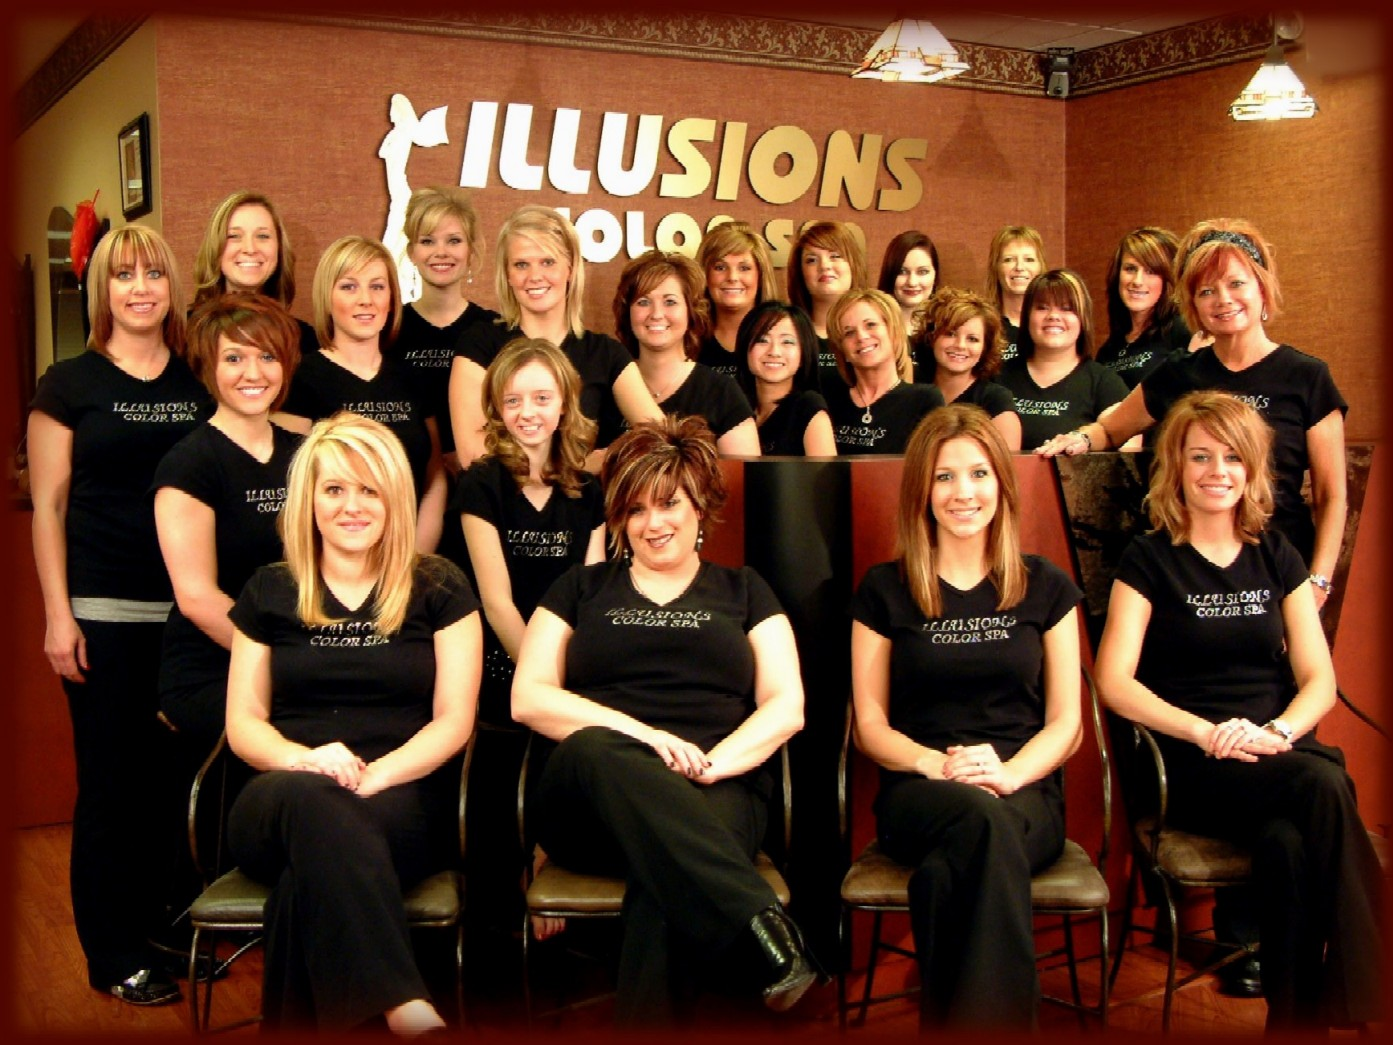 Illusions Spa- Top 10 Best & Popular Beauty Salons in America for Women (1)